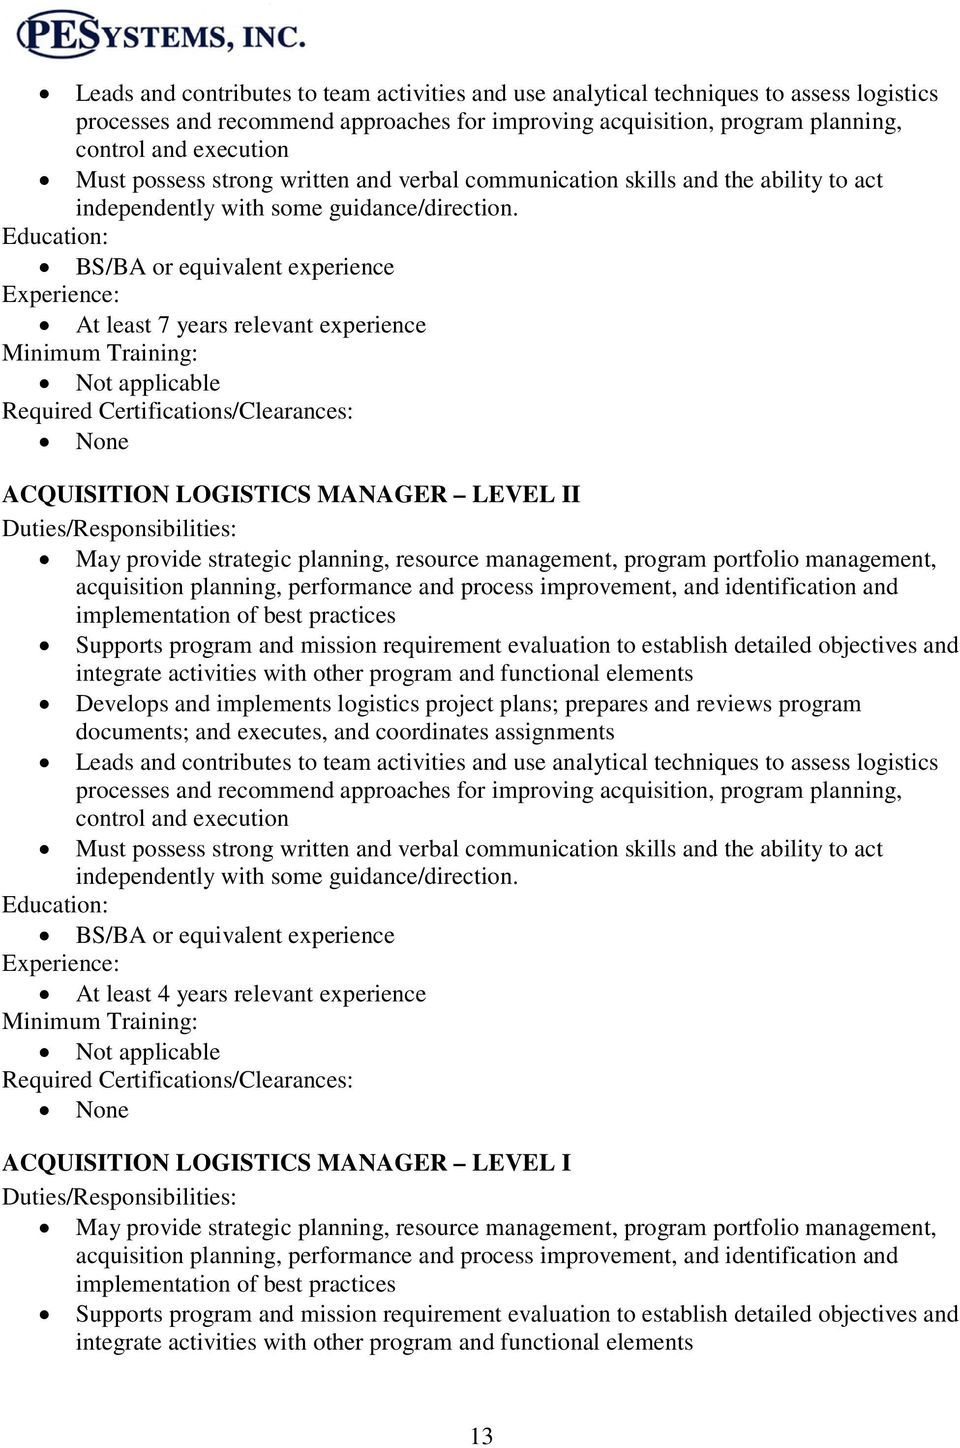 BS/BA or equivalent experience At least 7 years relevant experience Not applicable : ACQUISITION LOGISTICS MANAGER LEVEL II : May provide strategic planning, resource management, program portfolio